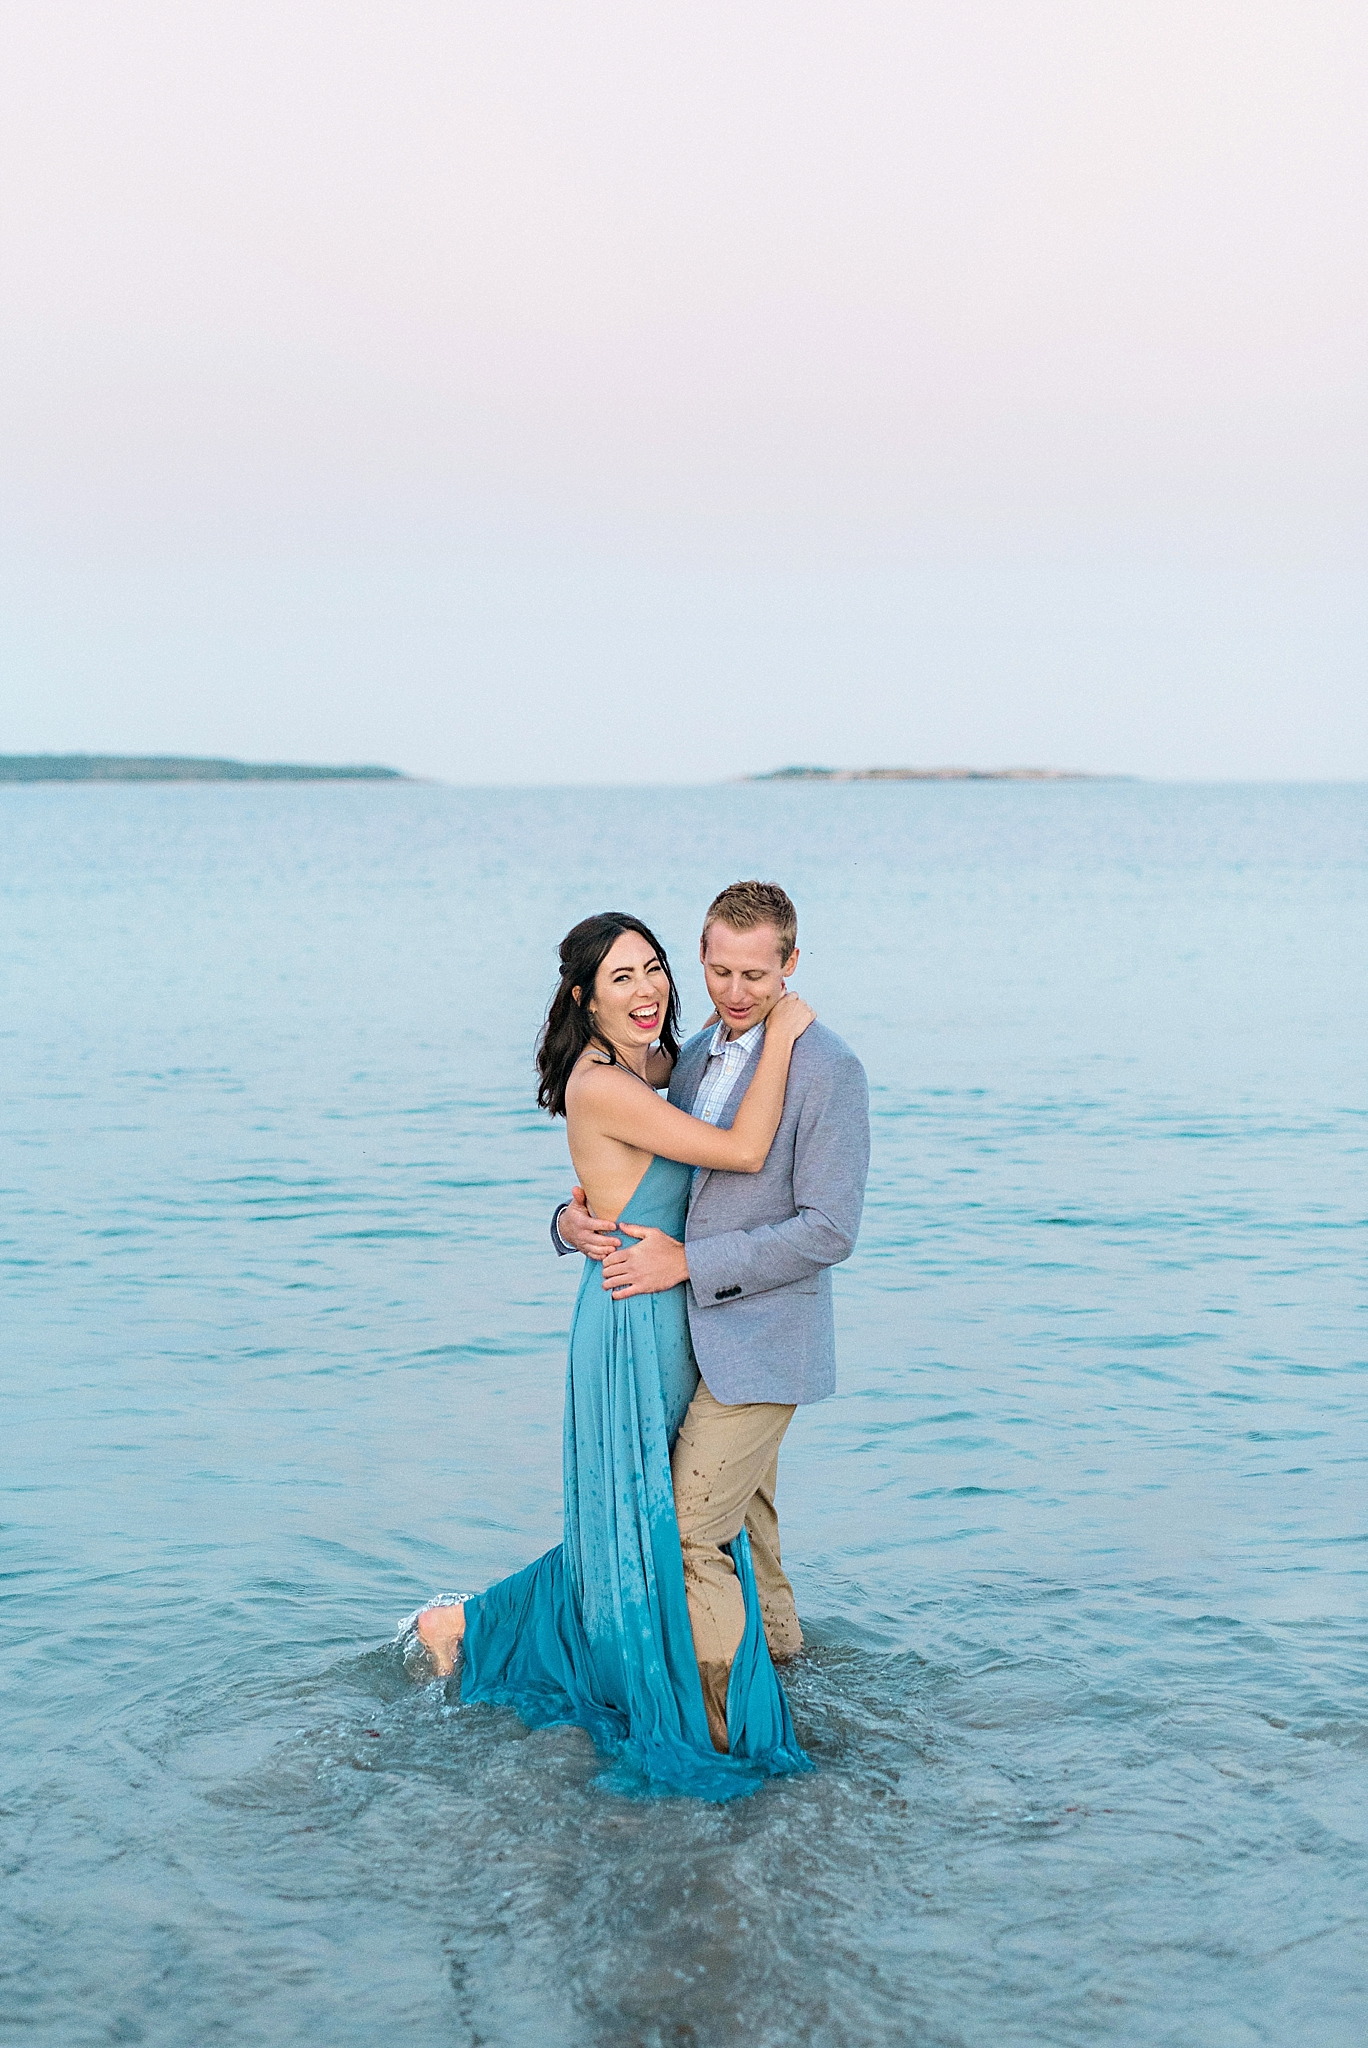 Romantic Seaside Beach Engagement Shoot in Lulu's long flowy maxy dress_043.jpg